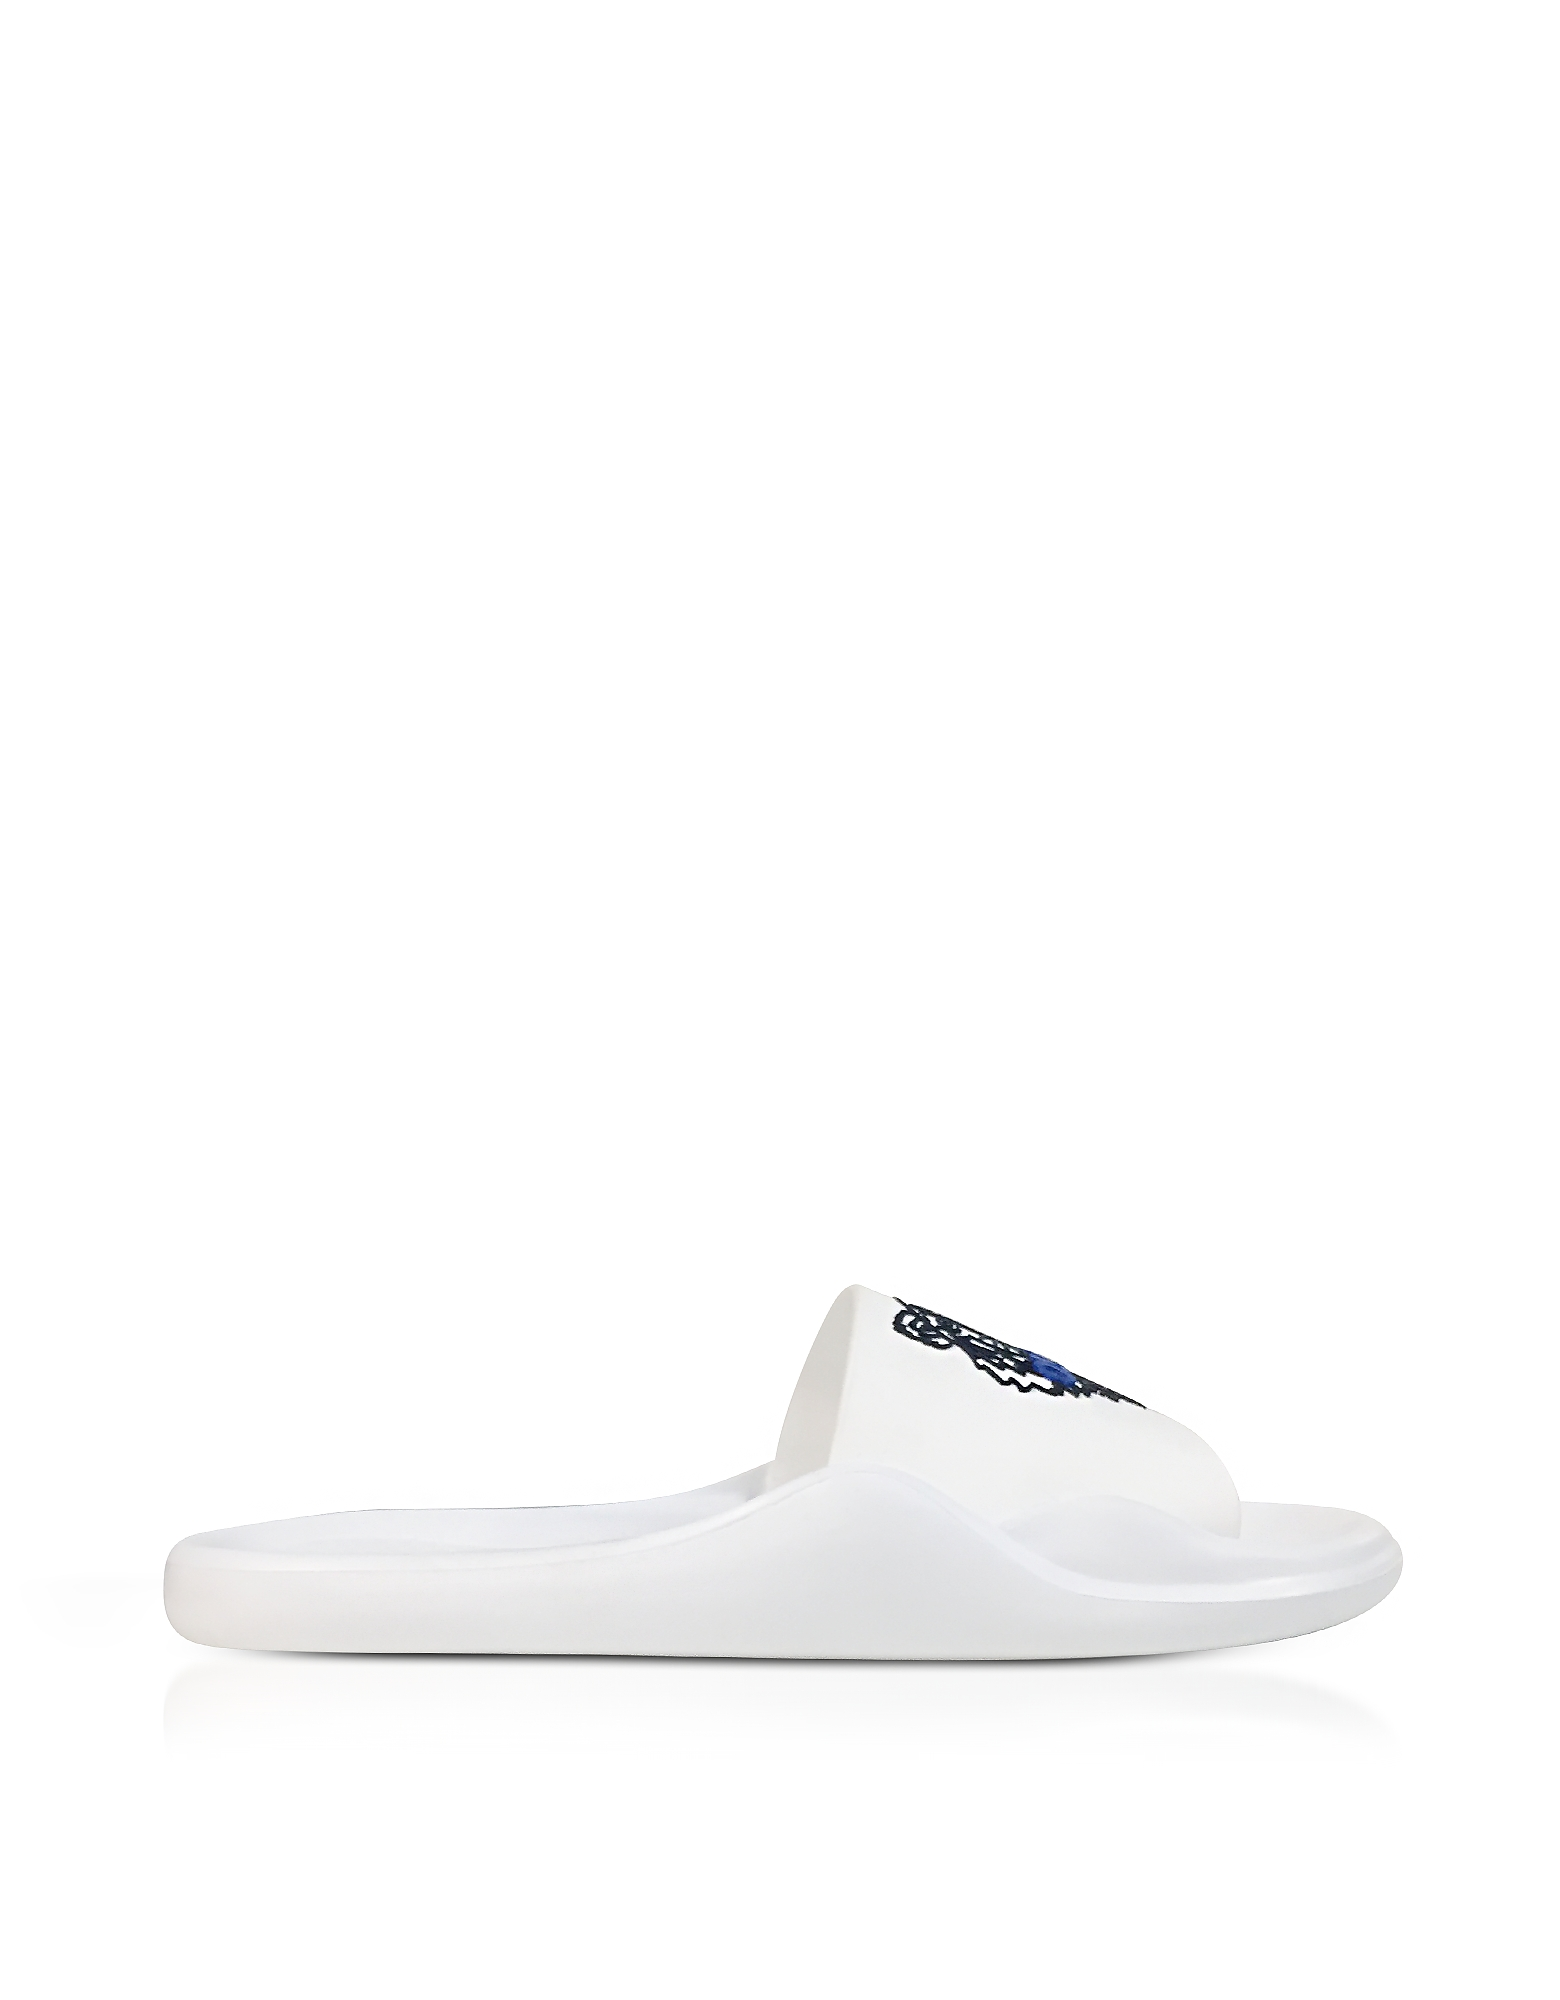 Kenzo Shoes, White Women's Pool Sandals w/Tiger Logo